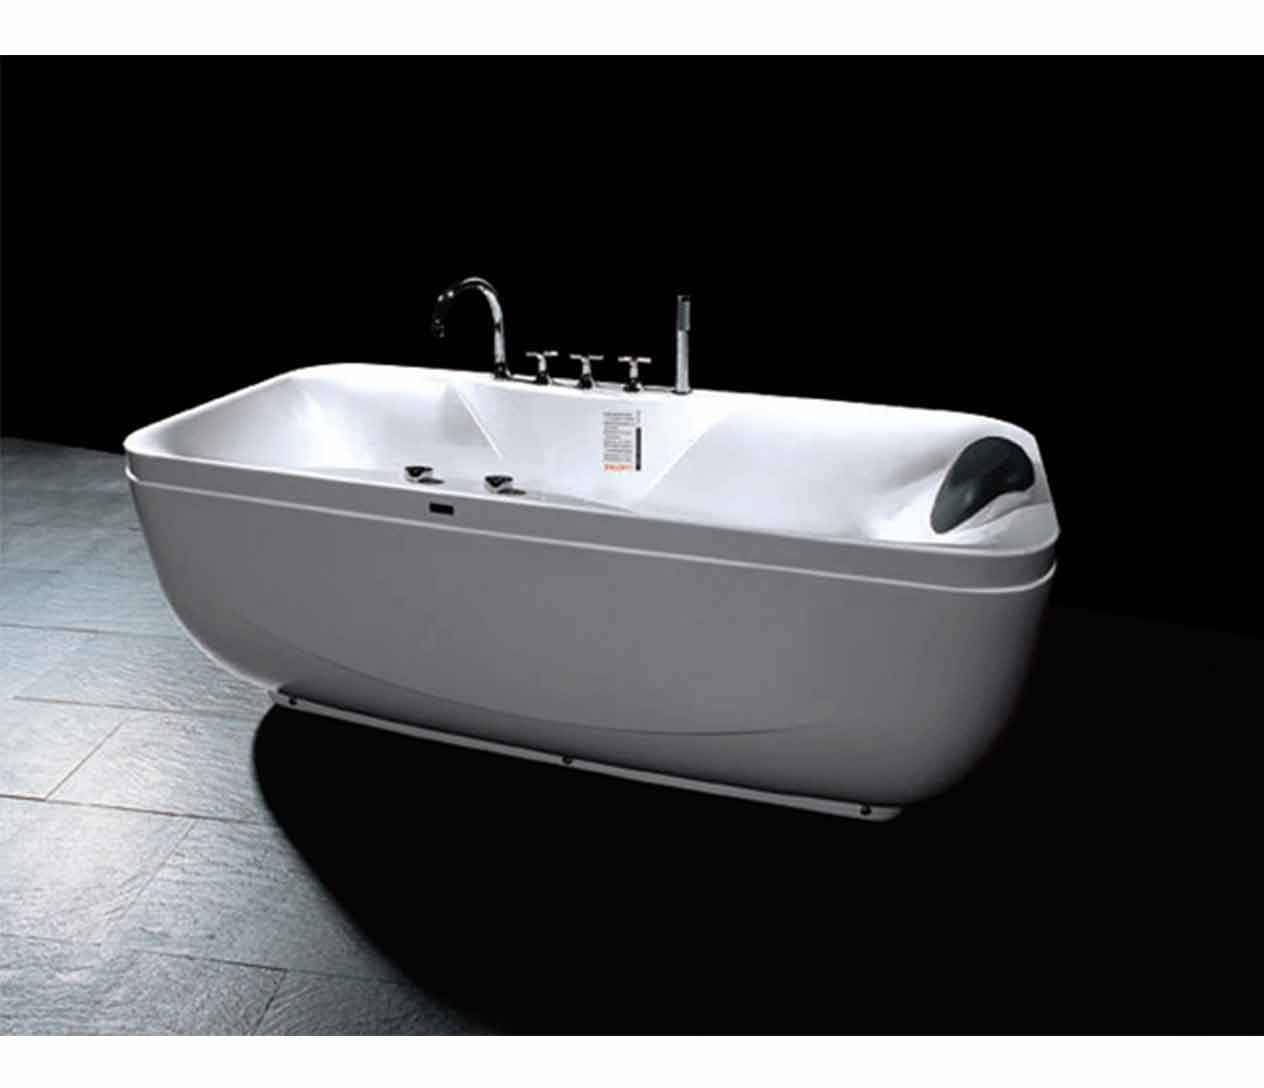 hight resolution of ow 9042 jetted tub luxury spas inc indoor jacuzzi tubs access panel jacuzzi plumbing schematic bathtub